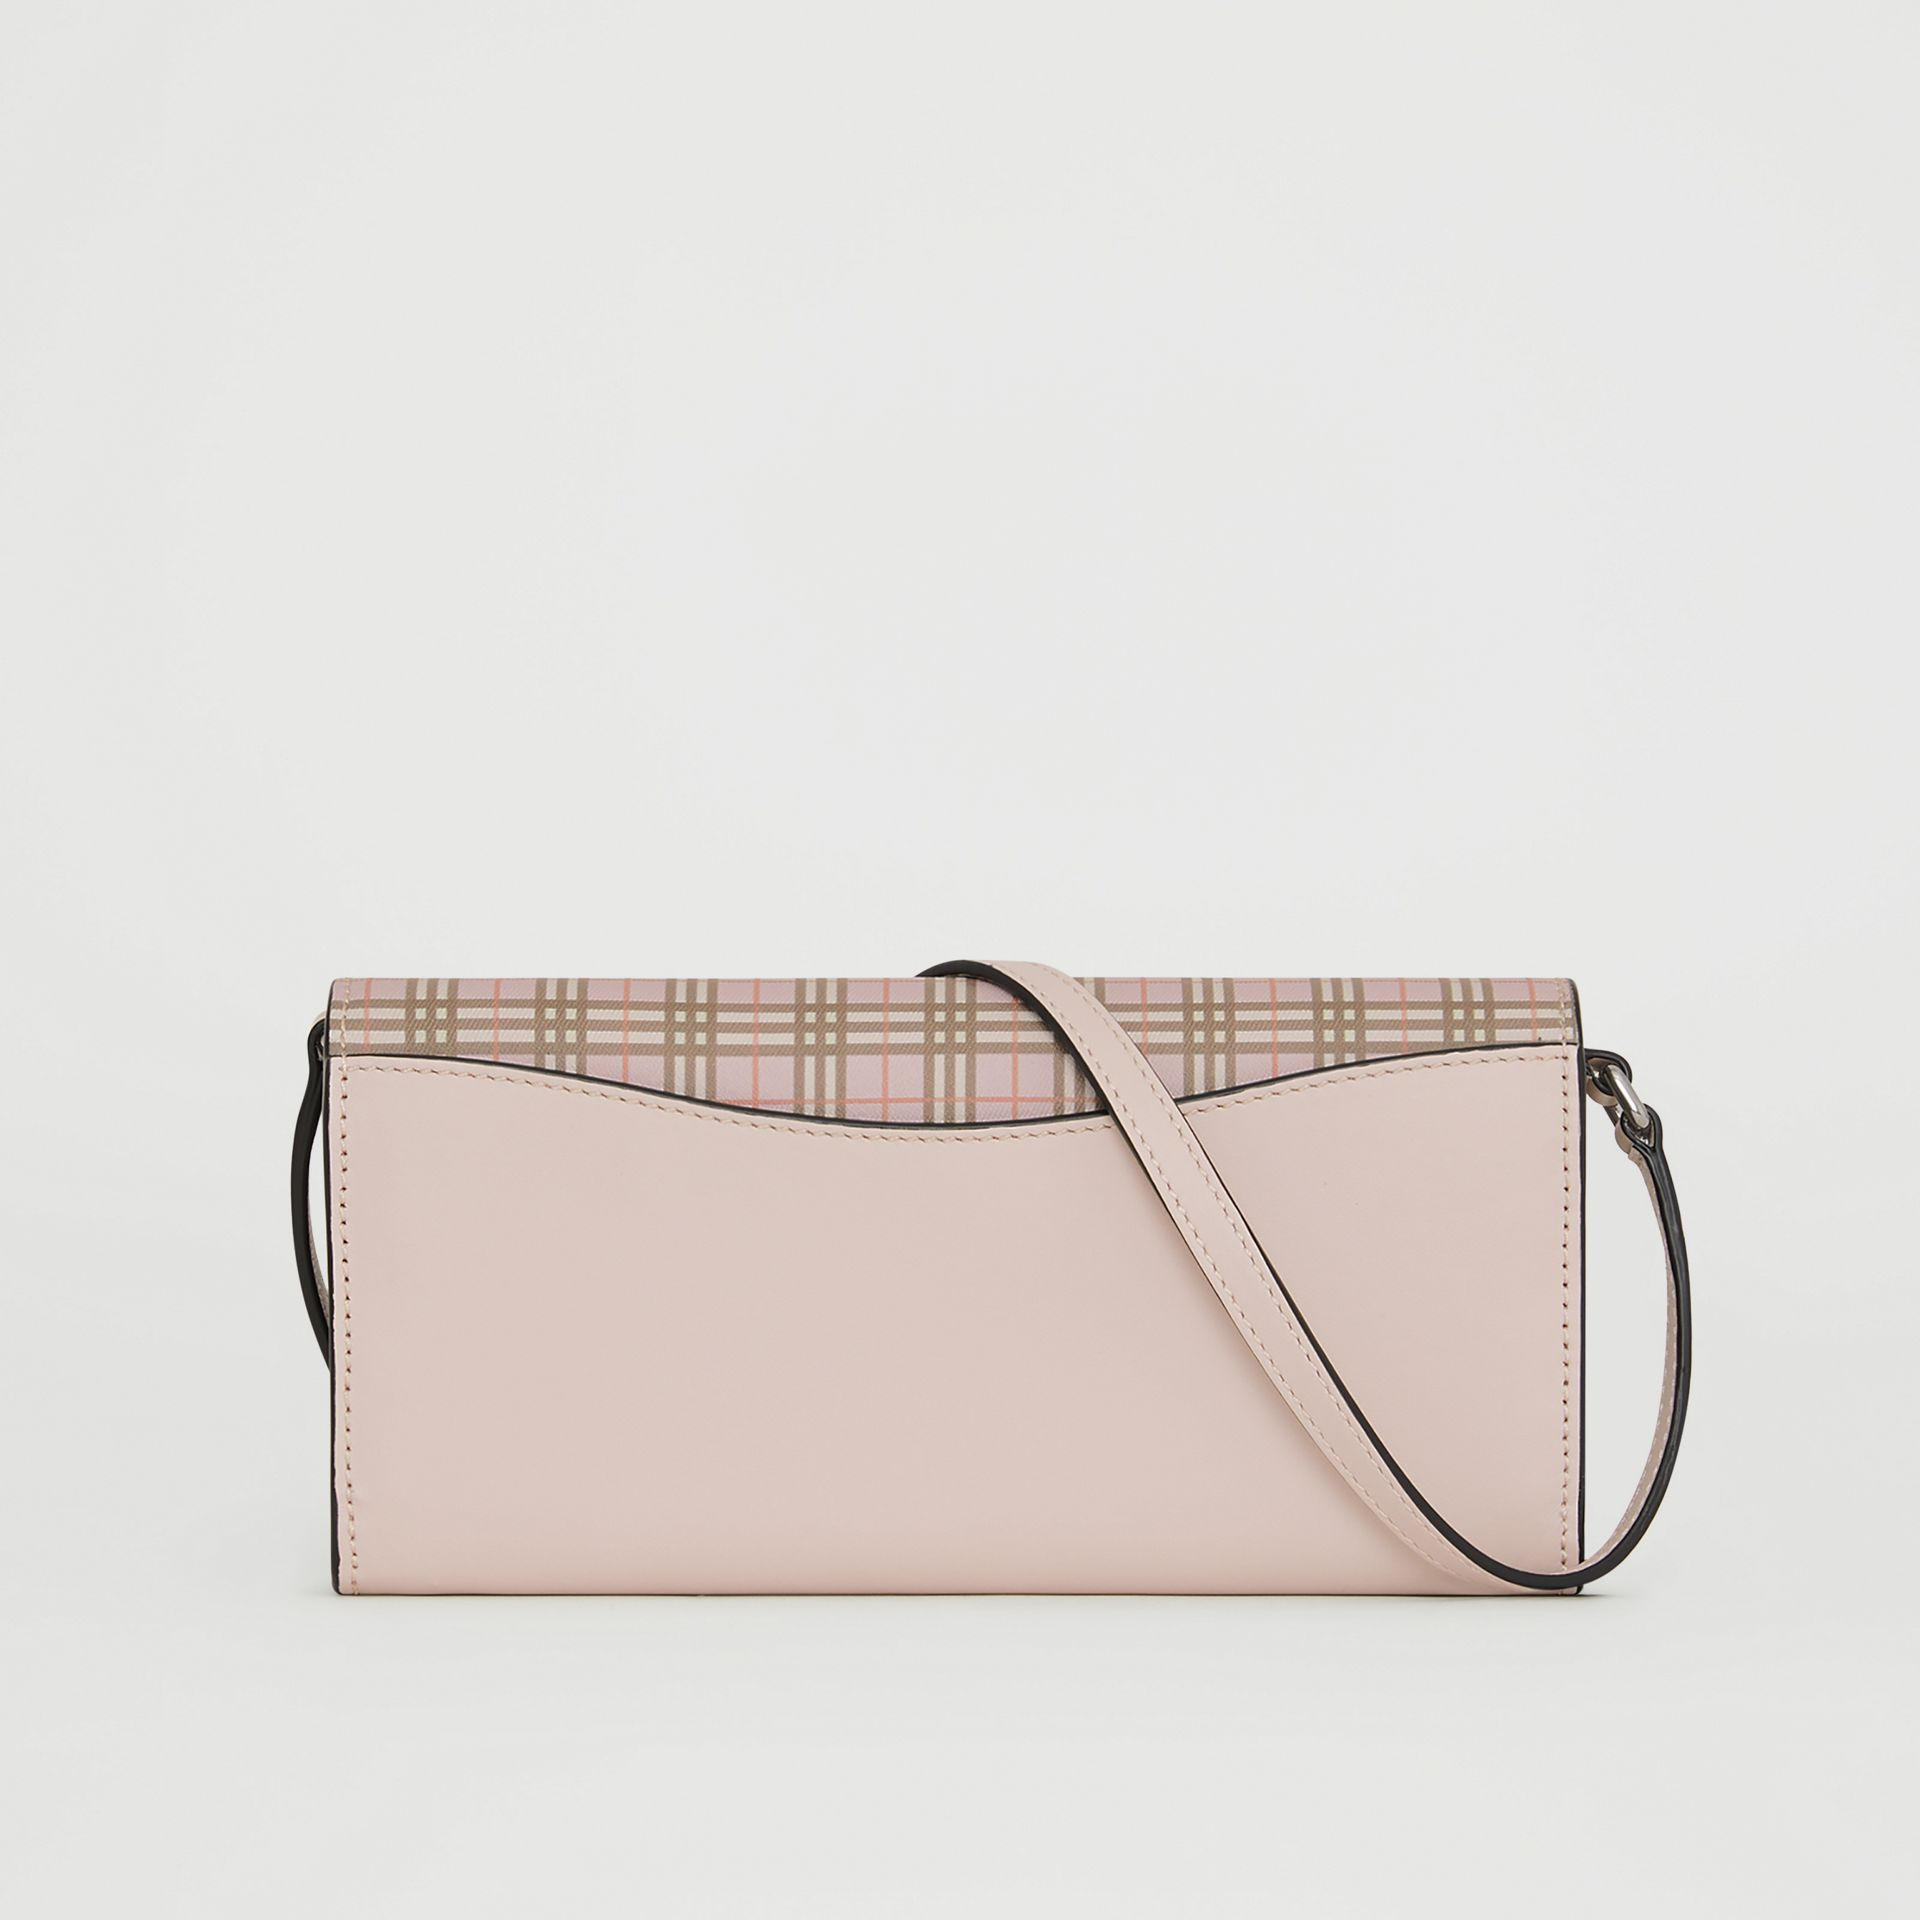 Portefeuille à micro-motif check avec sangle amovible (Rose Glacé) - Femme | Burberry - photo de la galerie 5